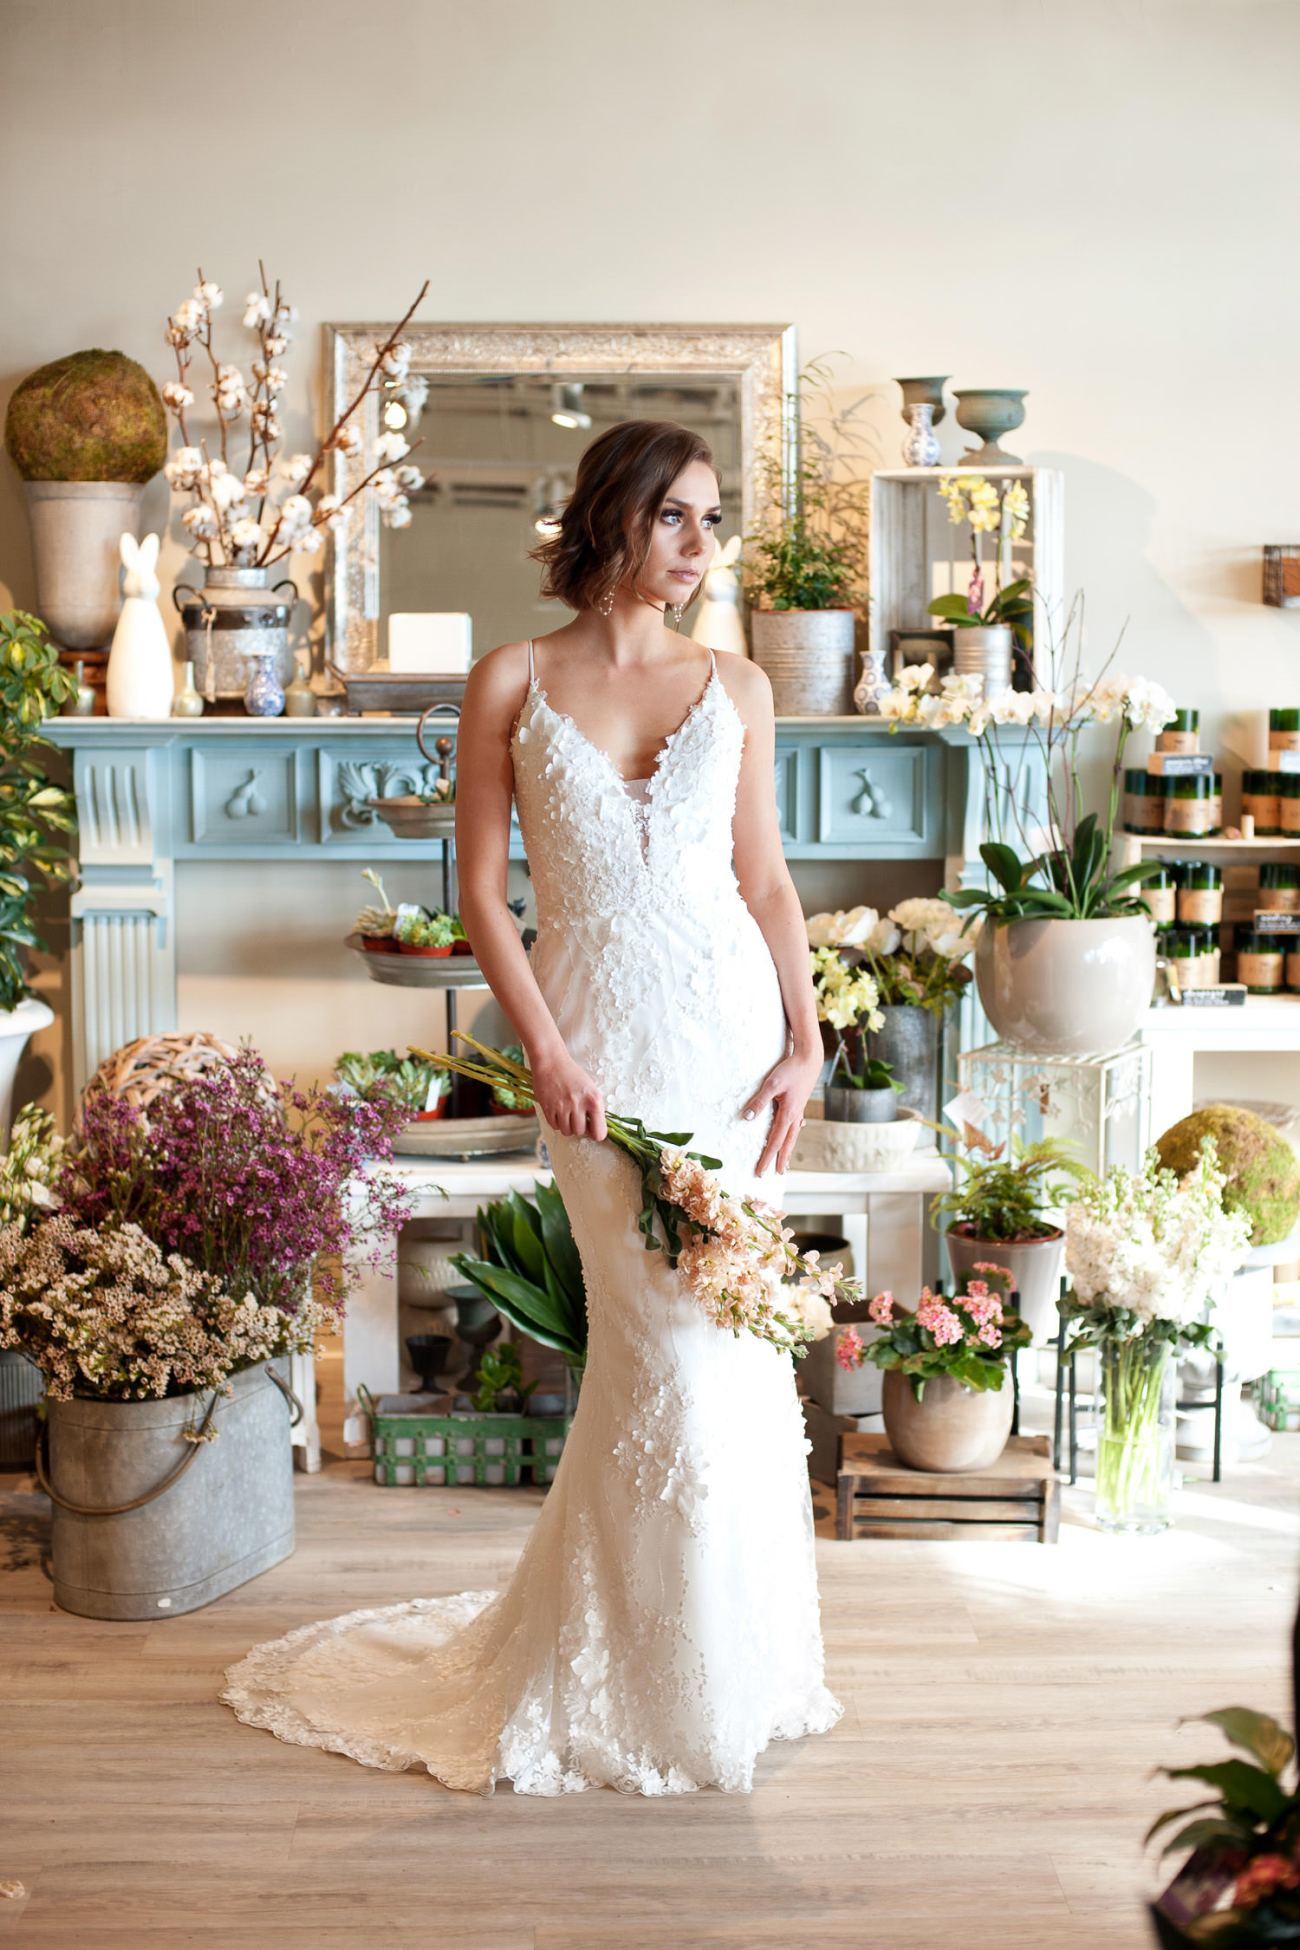 bride wears a floral lace gown from Lis Simon captured by Tara Whittaker Photography